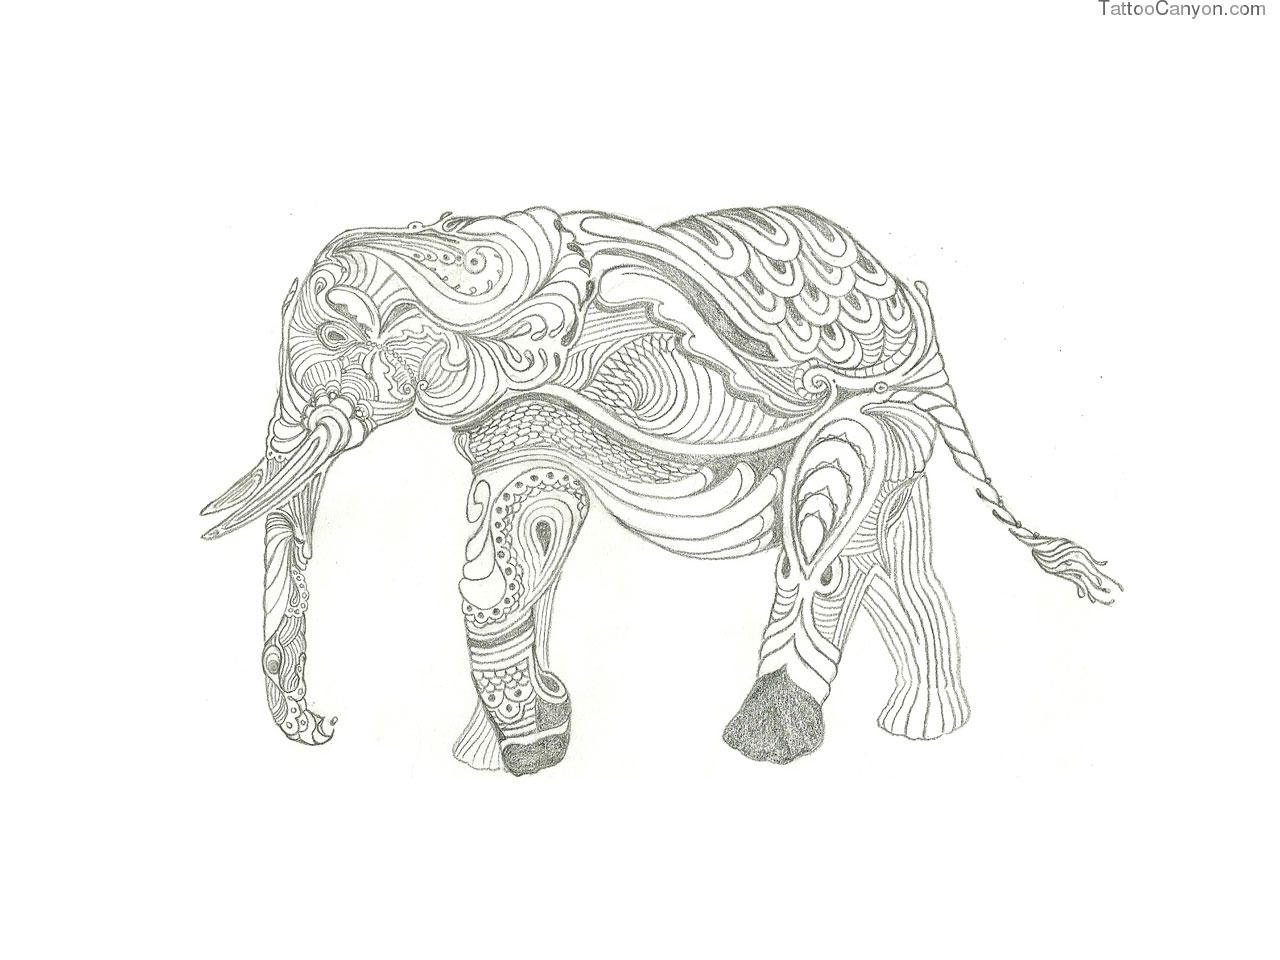 Free Designs Indian Elephant With Ornaments Tattoo Wallpaper Picture 7195